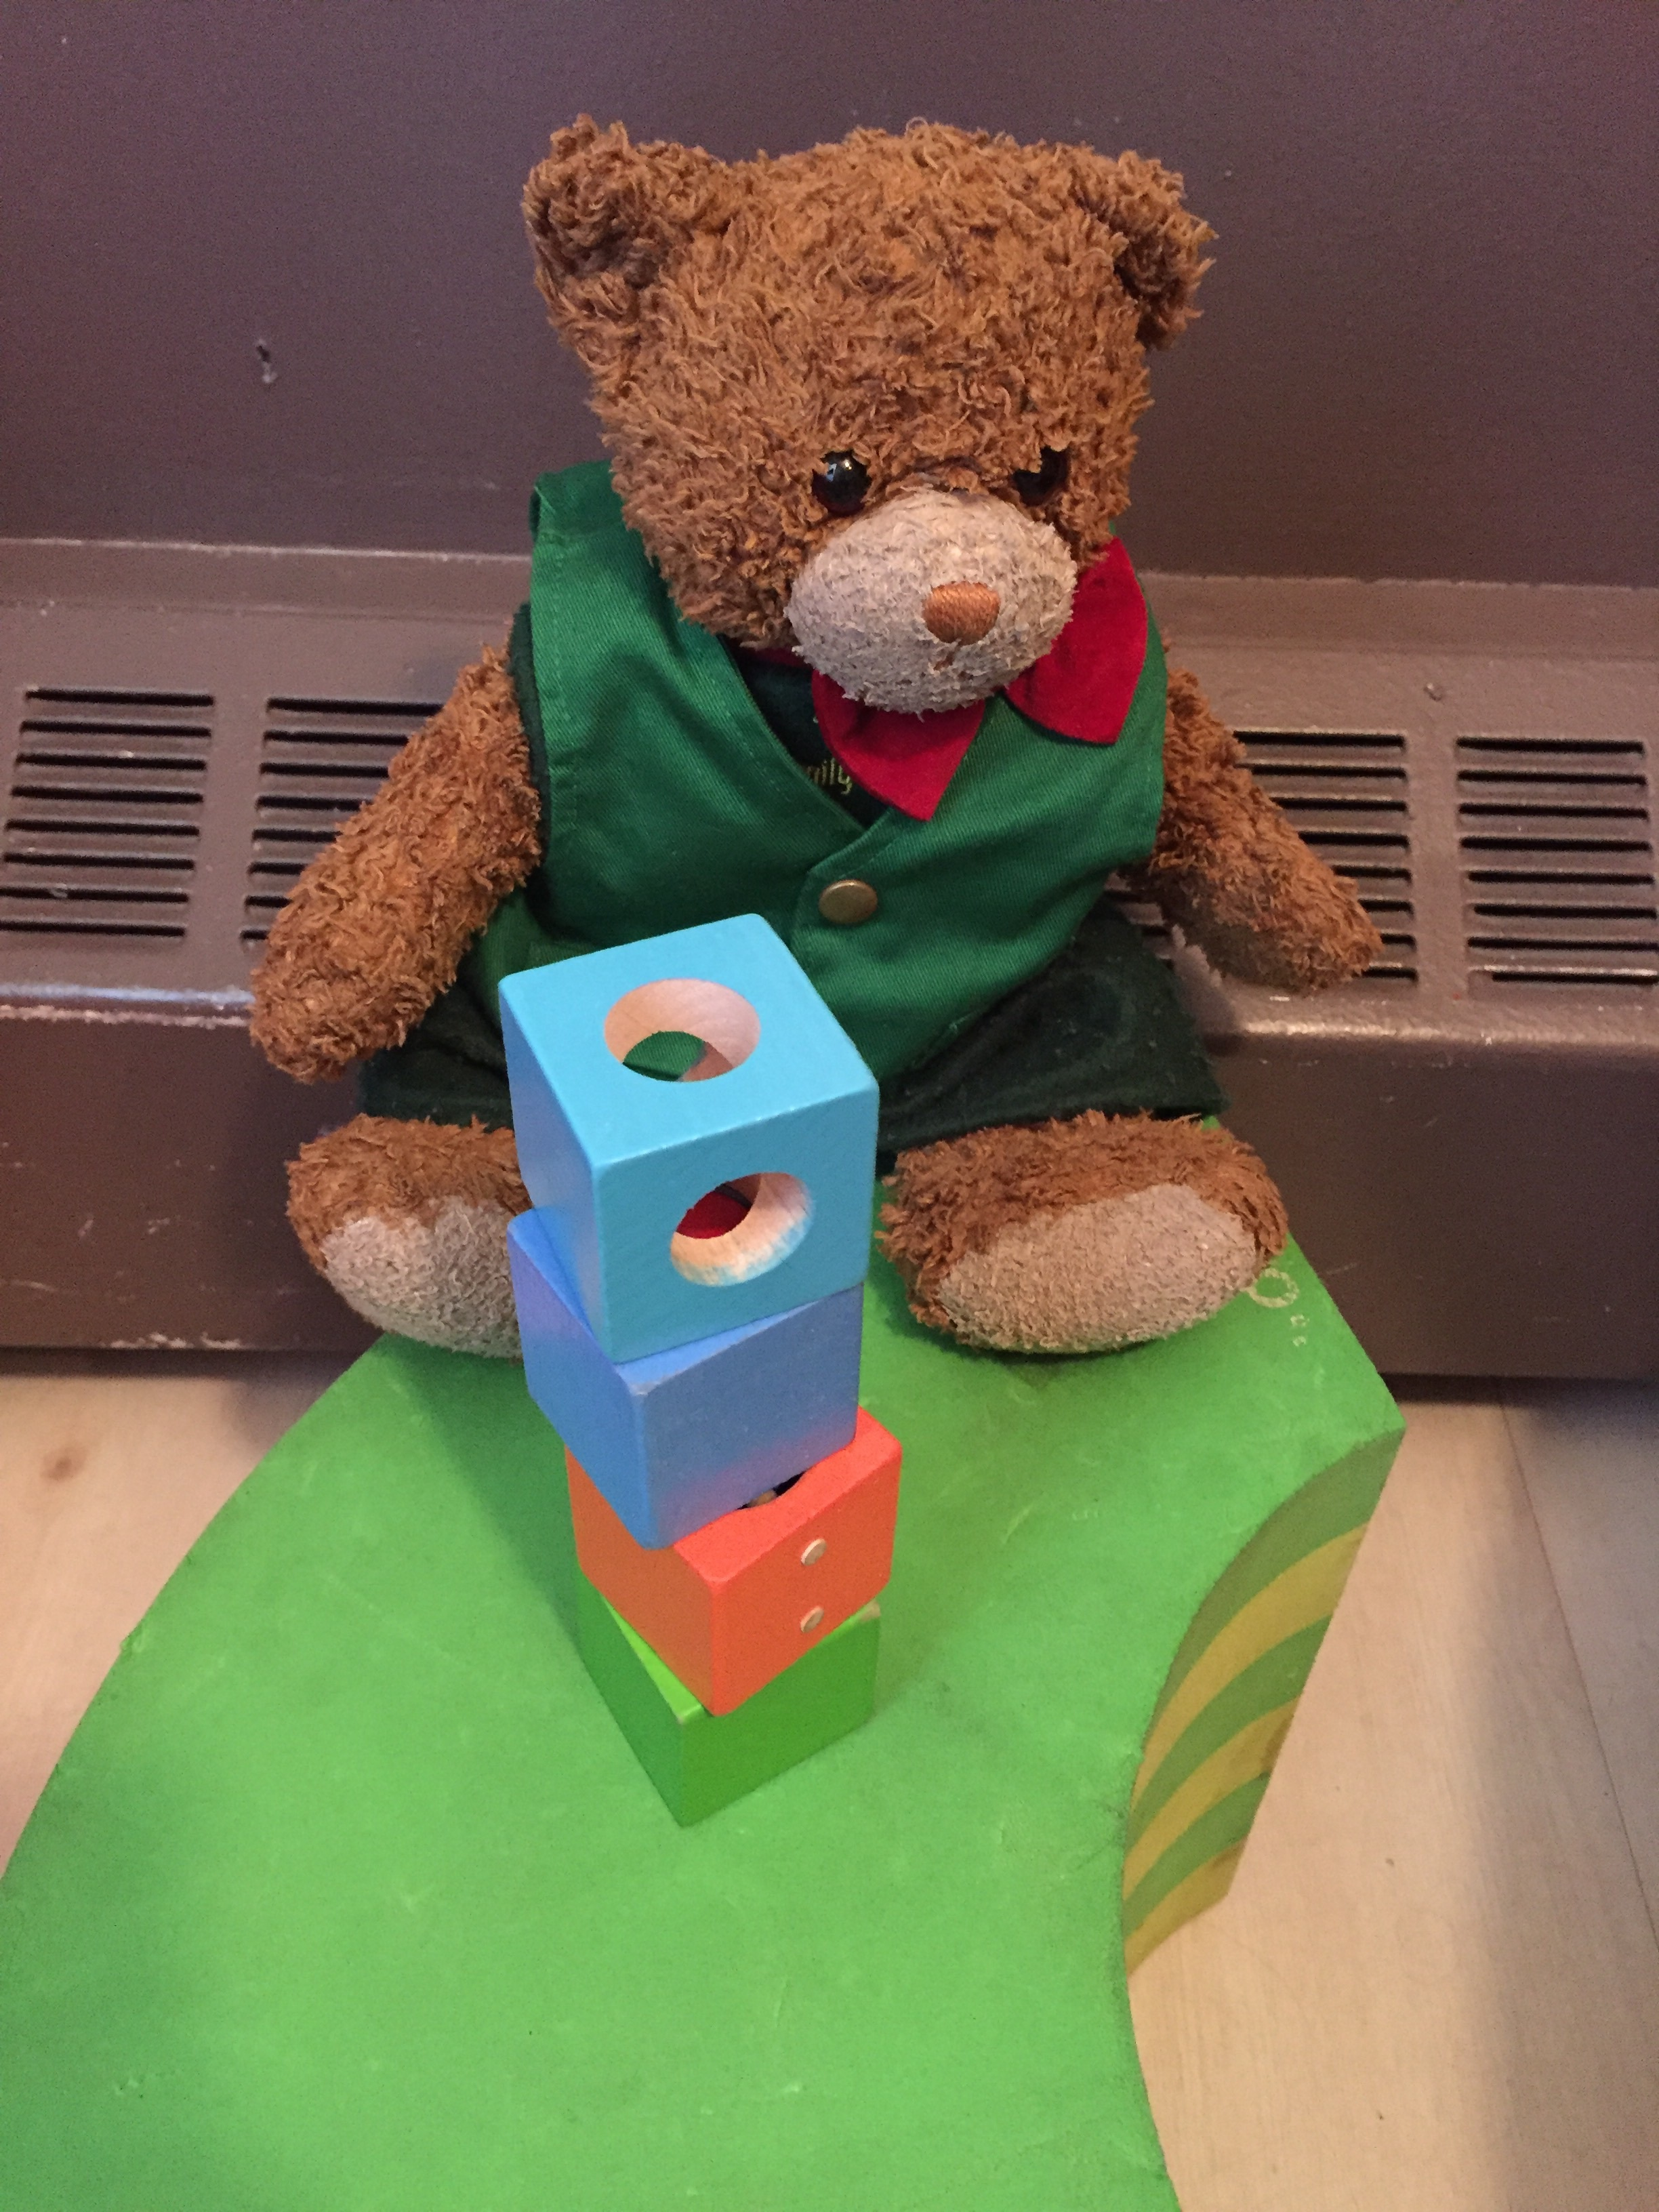 Kuma played with blocks (and was joined by Pikachu eventually)